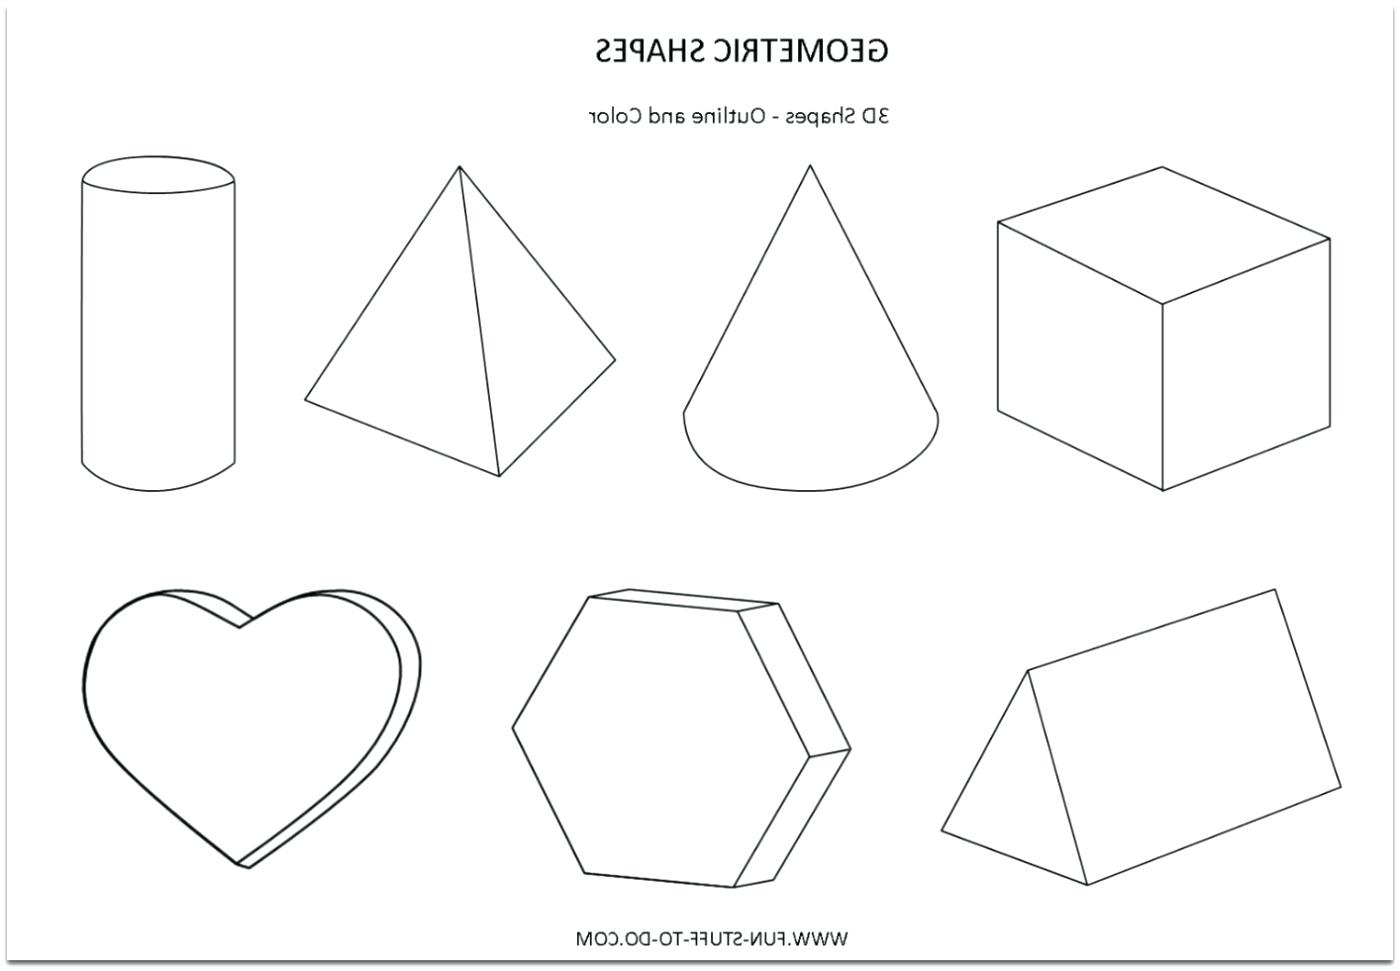 3 Dimensional Shapes Drawing At Getdrawings